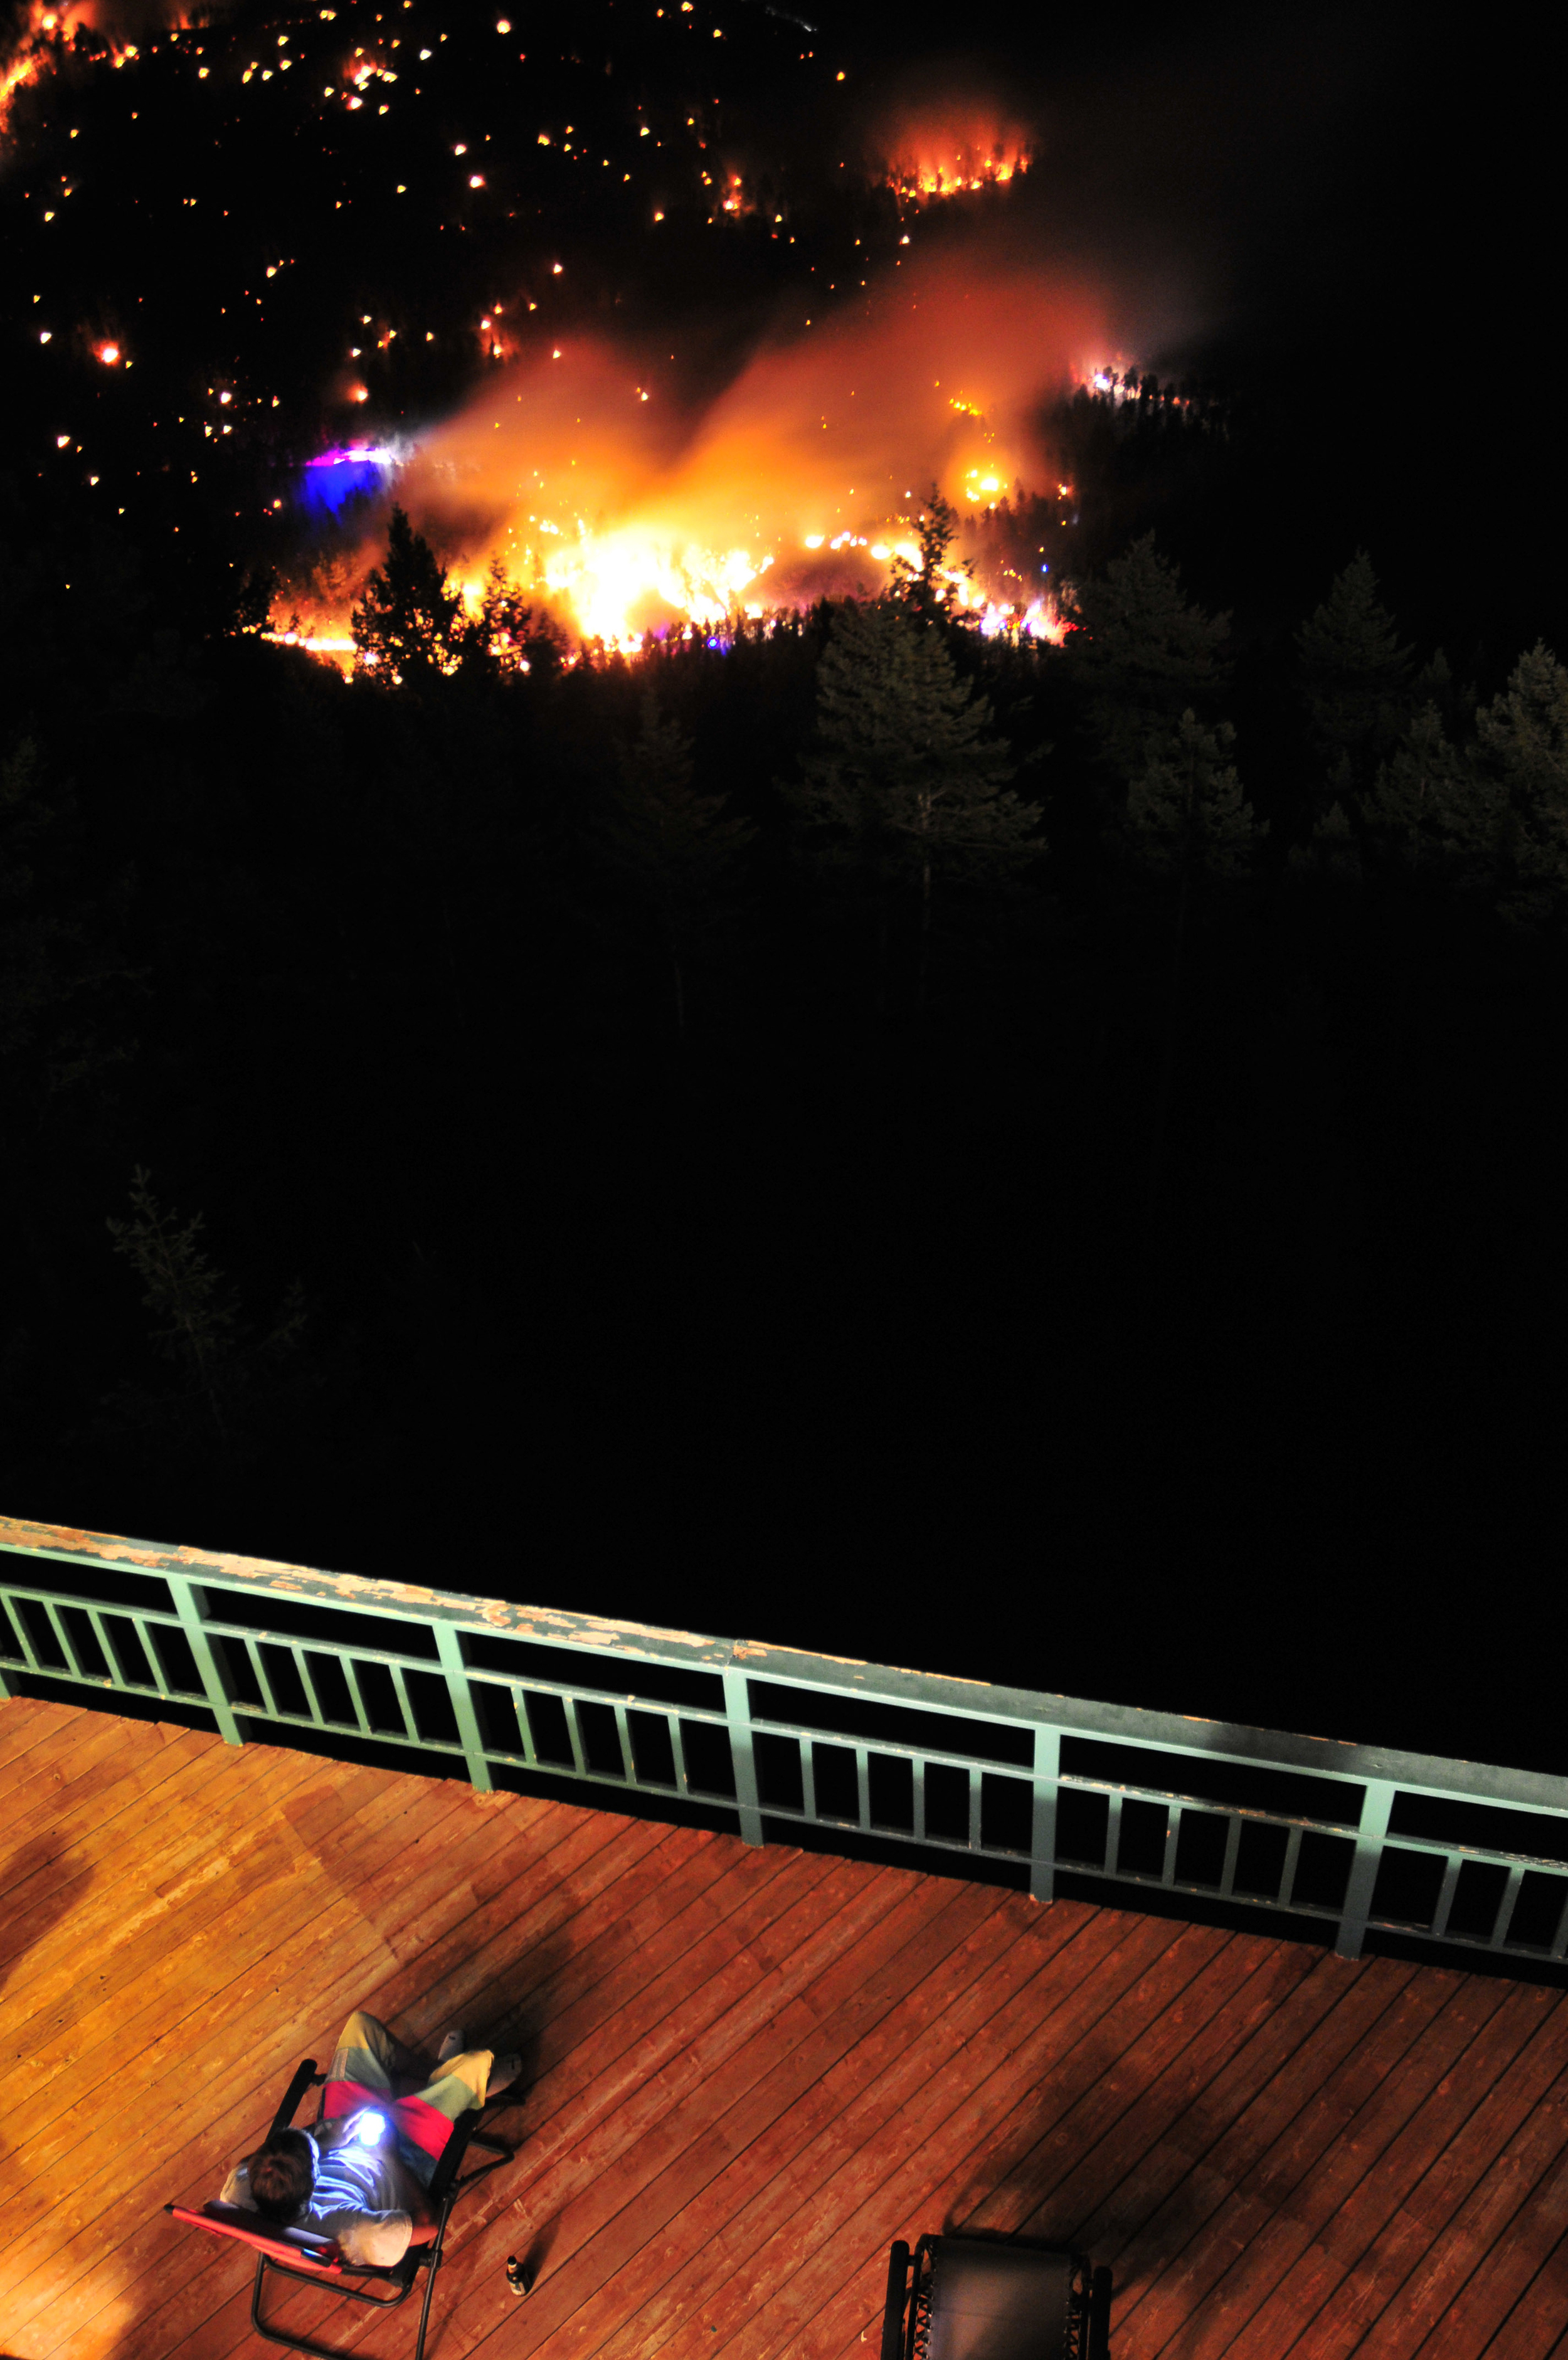 Patrick Gillean watches the Maxwell Fire burn from his patio in Boulder Colorado June 26, 2011. The Maxwell Fire burned approximately seventy acres of public forest in Lefthand Canyon before firefighters could control the blaze.